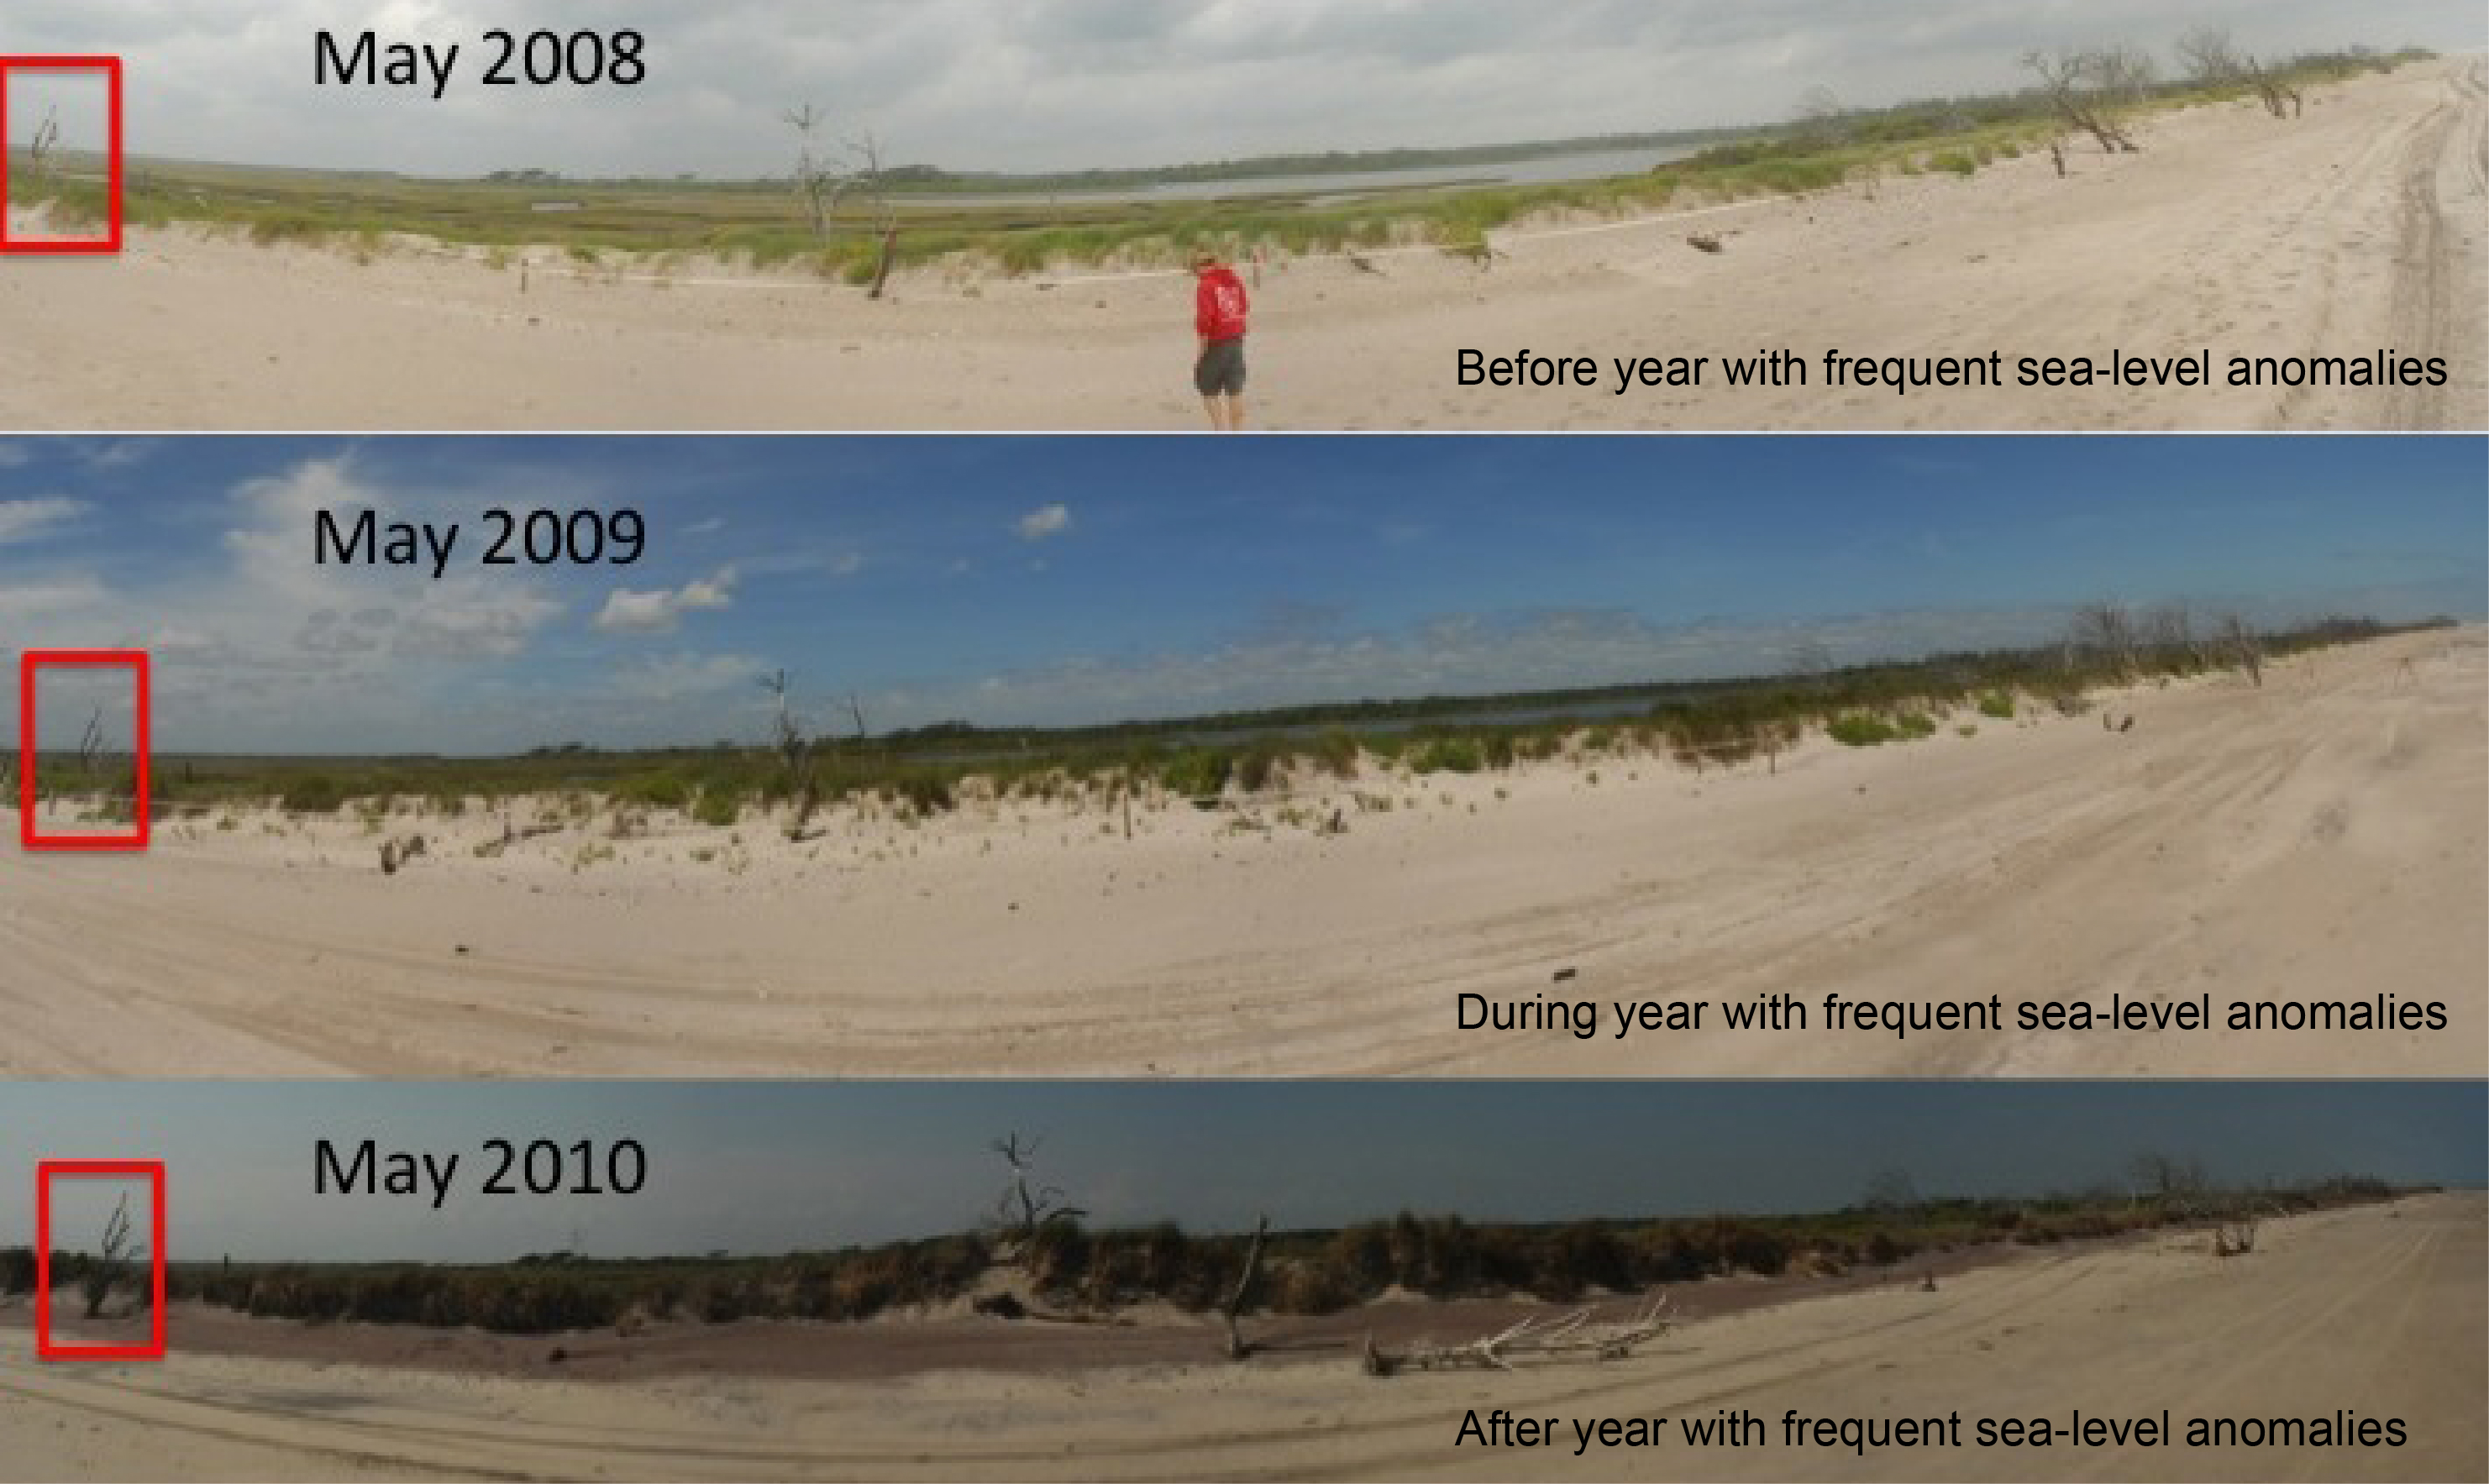 Photos taken before, during, and after a year of frequent sea-level anomalies at Onslow Beach, a barrier island in North Carolina, show how much erosion these events can cause in a year. As climate change warms the ocean and changes ocean processes, sea-level anomalies could become higher and more frequent in the future, said the new study. Credit: Ethan Theuerkauf